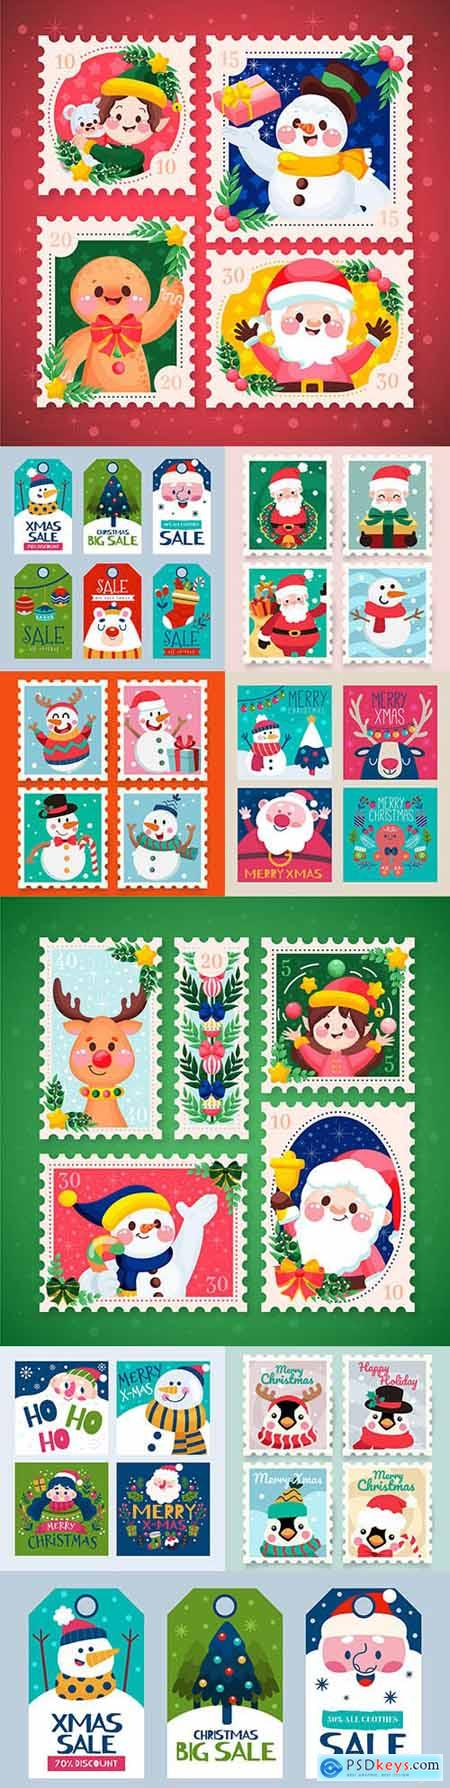 Christmas stamps and postcards flat design collection painted 2